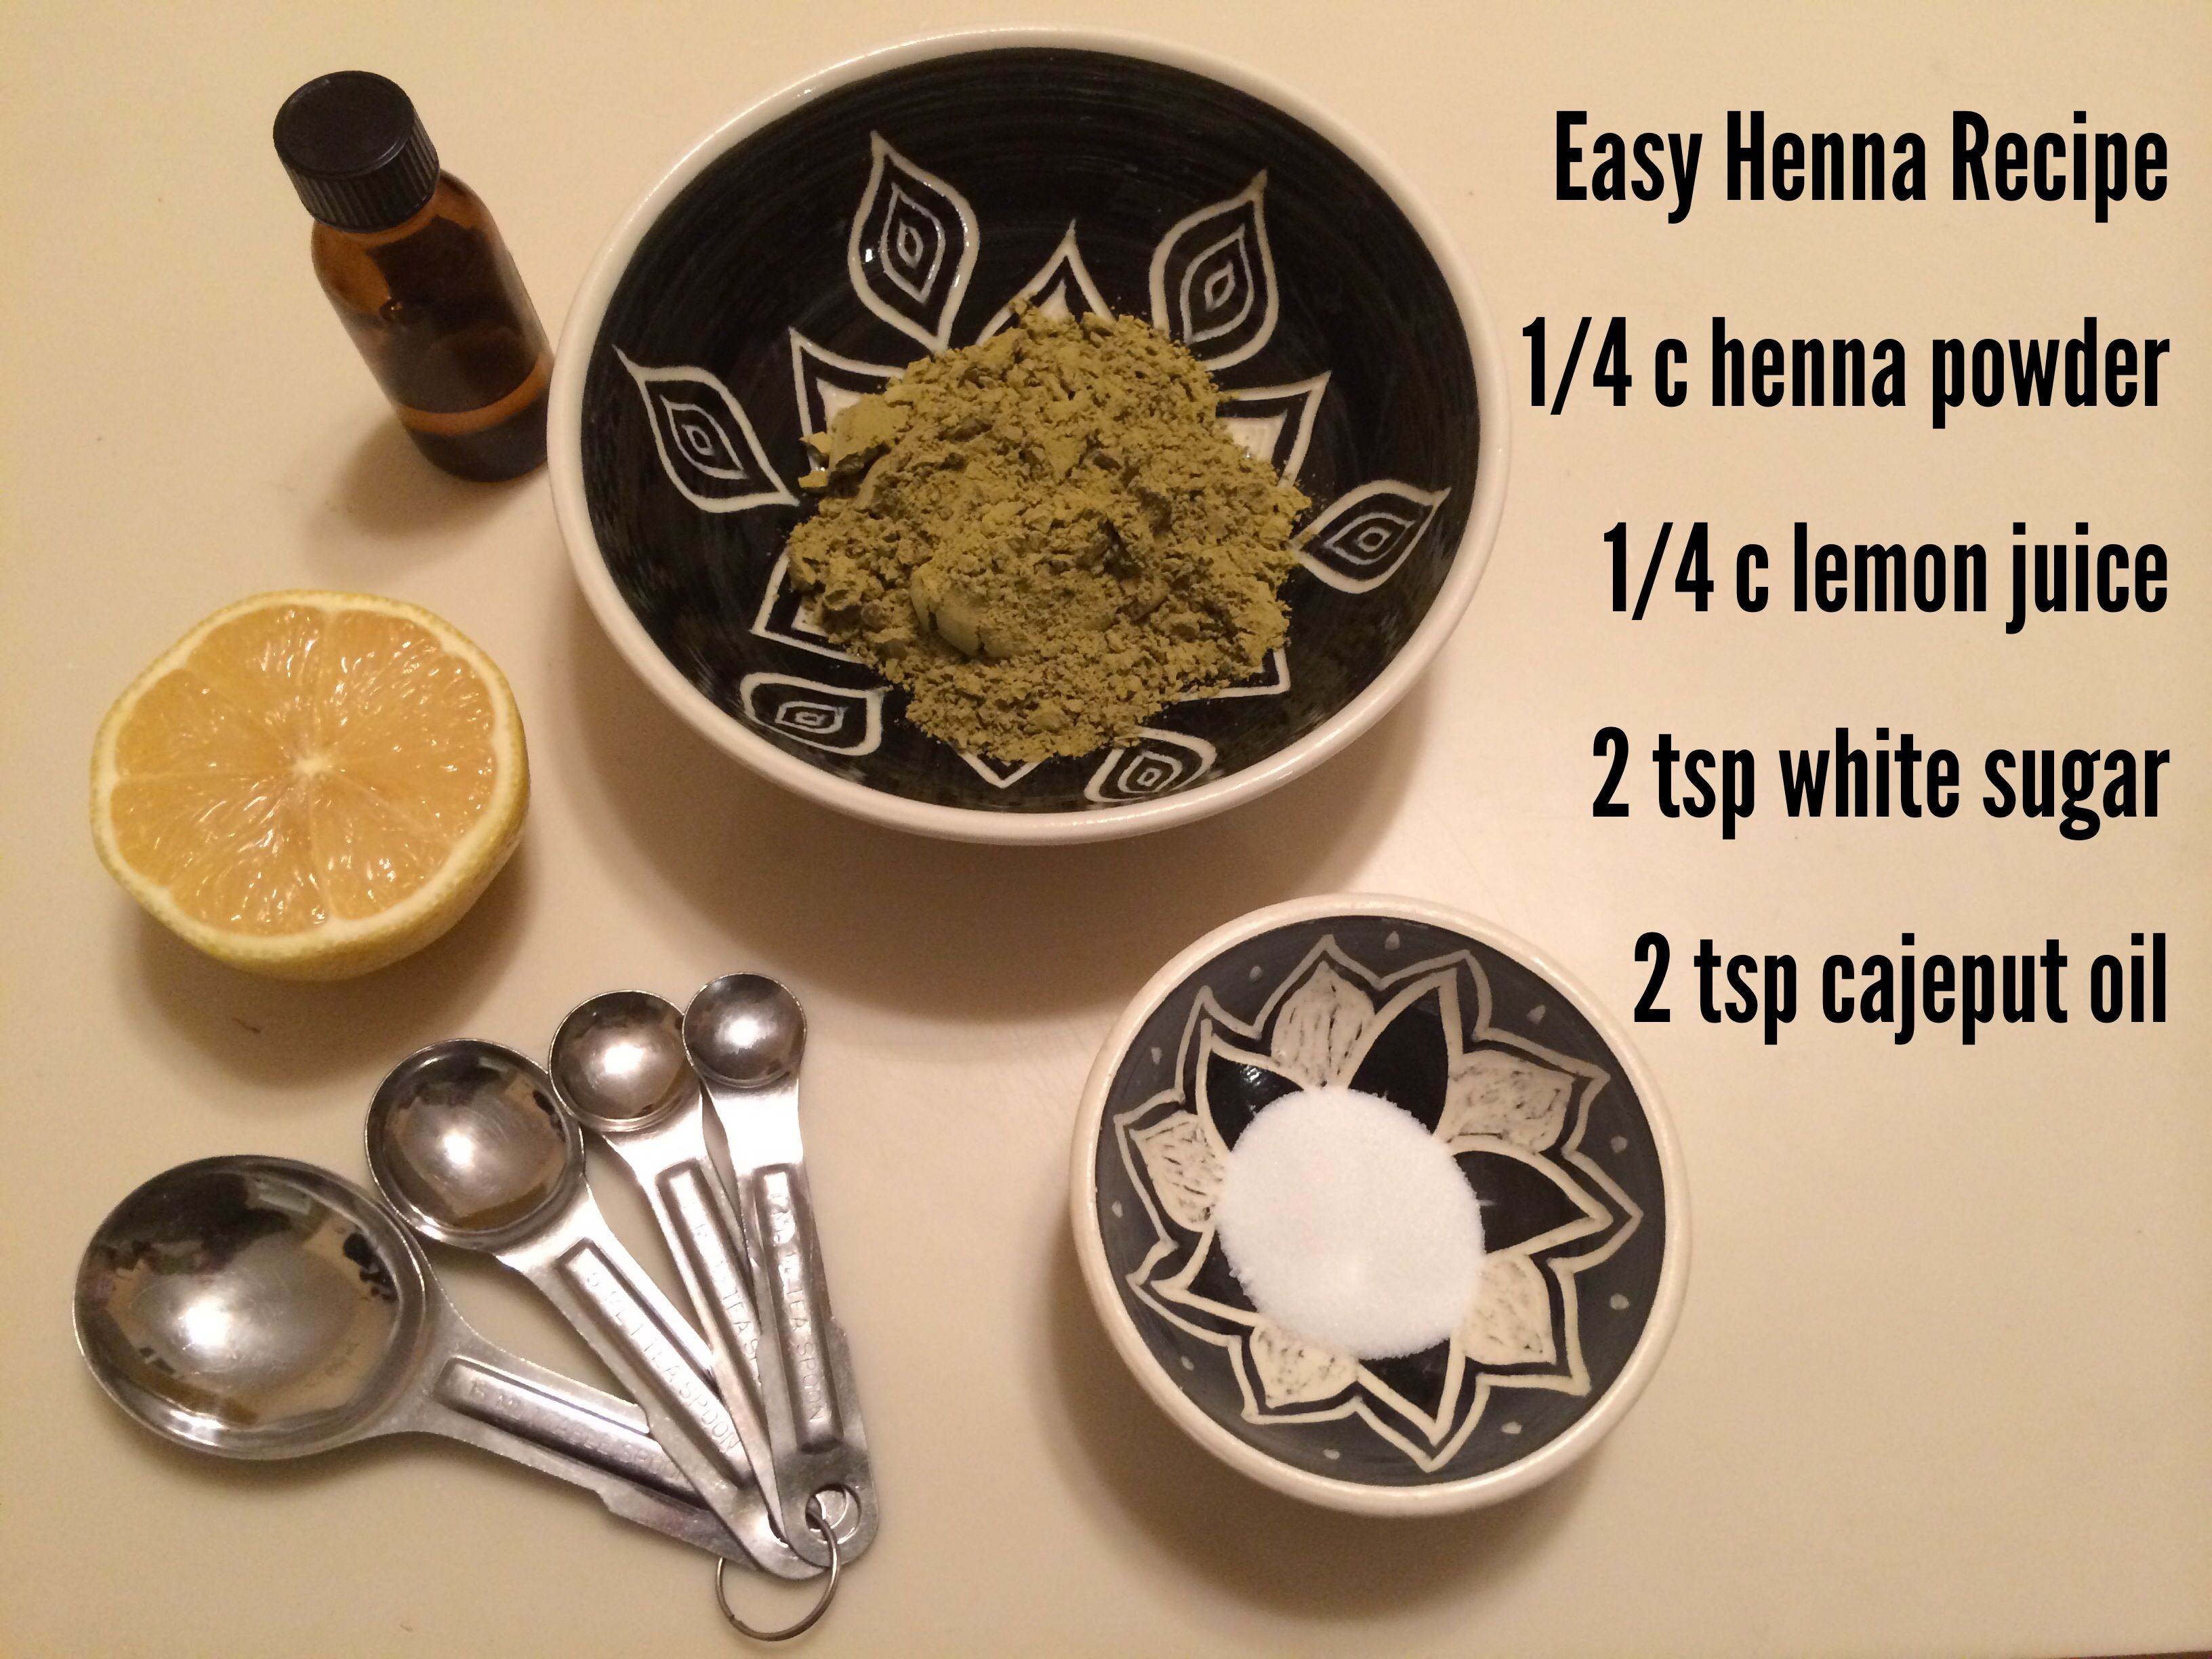 Mehndi Henna Mix : Mixing henna paste isn t difficult you can get a great